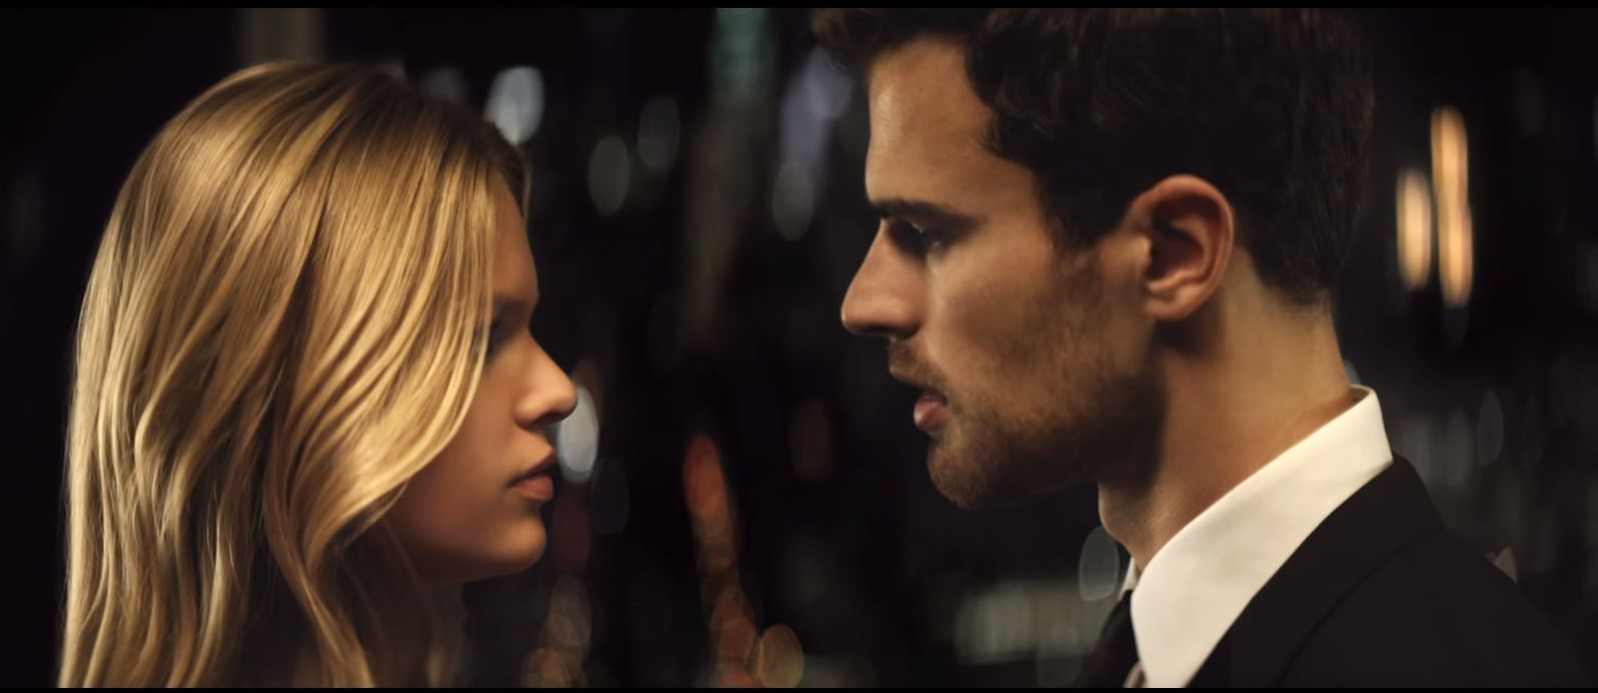 Get Close Hugo Boss Perfumes For Him And Her